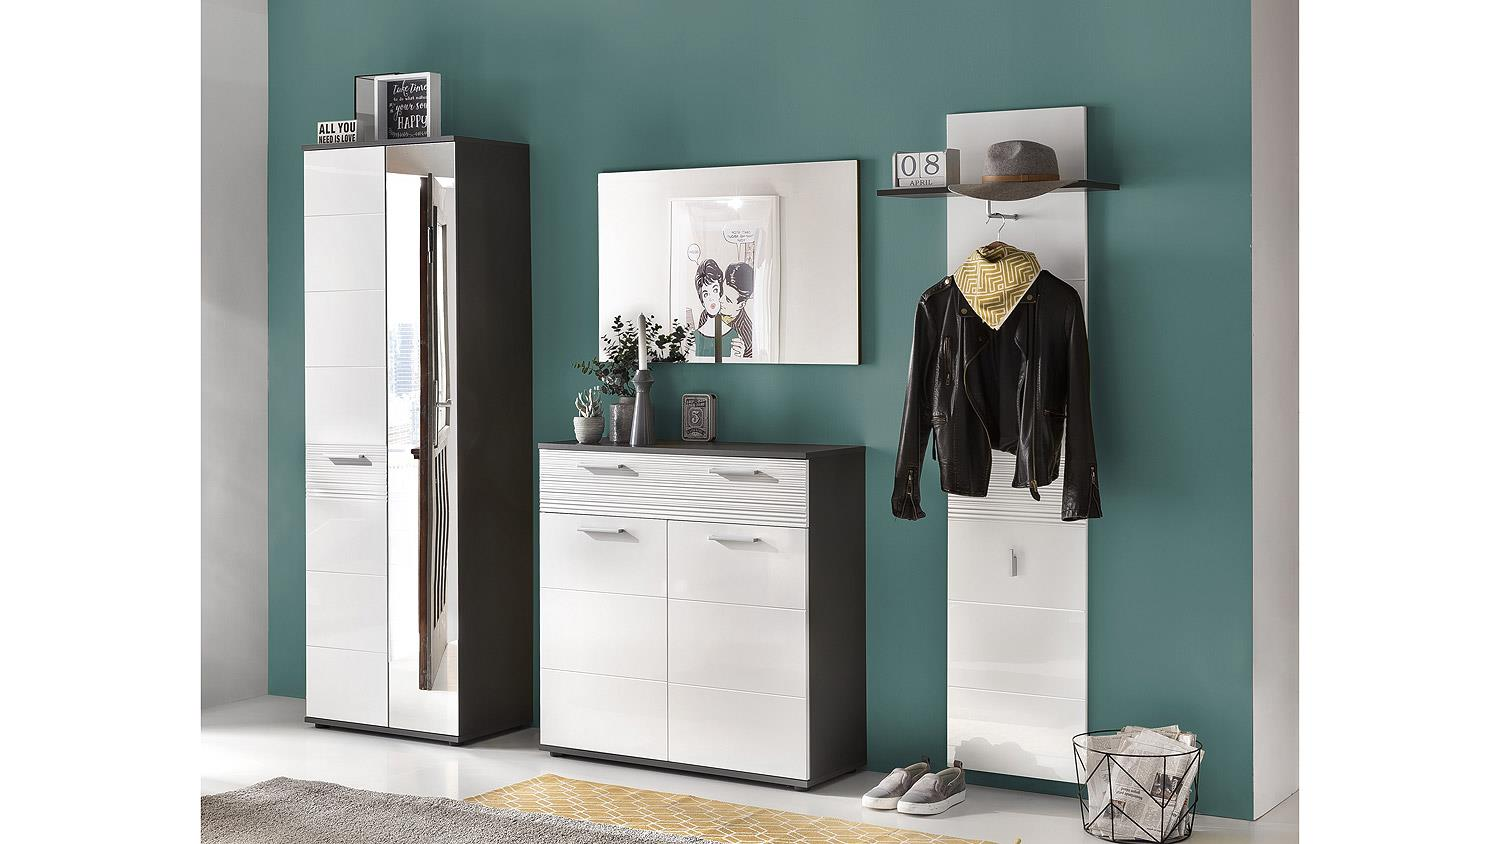 schuhkommode smart schuhschrank garderobe in grau und wei hochglanz. Black Bedroom Furniture Sets. Home Design Ideas